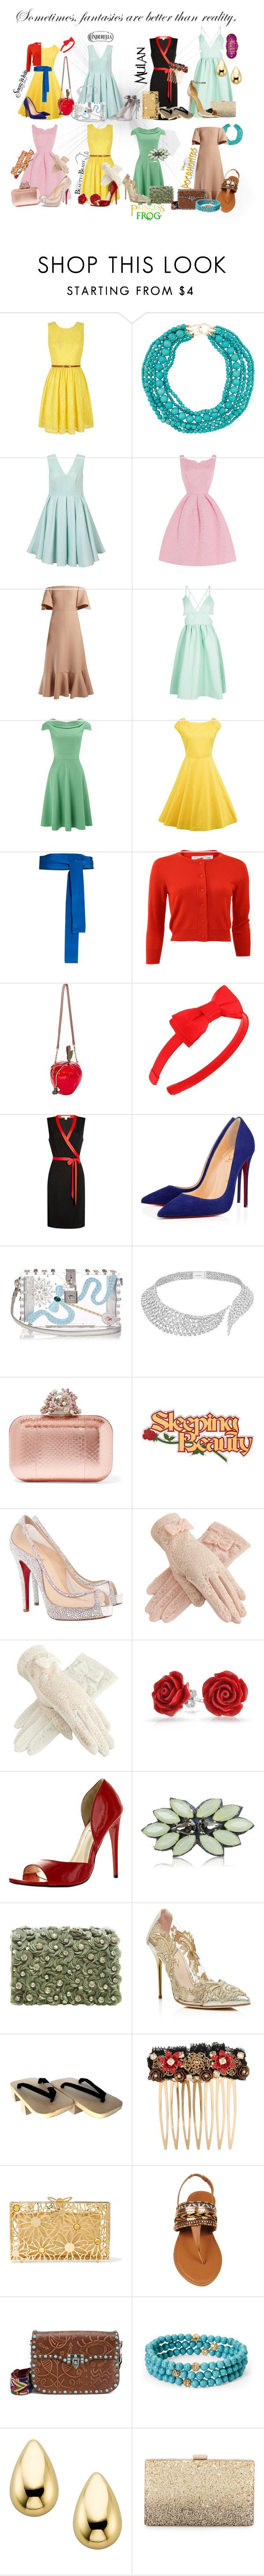 """Princesses out to brunch"" by lindsey-tudor ❤ liked on Polyvore featuring Yumi, Kenneth Jay Lane, Chi Chi, Valentino, Boohoo, Phase Eight, Diane Von Furstenberg, Oscar de la Renta, Betsey Johnson and L. Erickson"